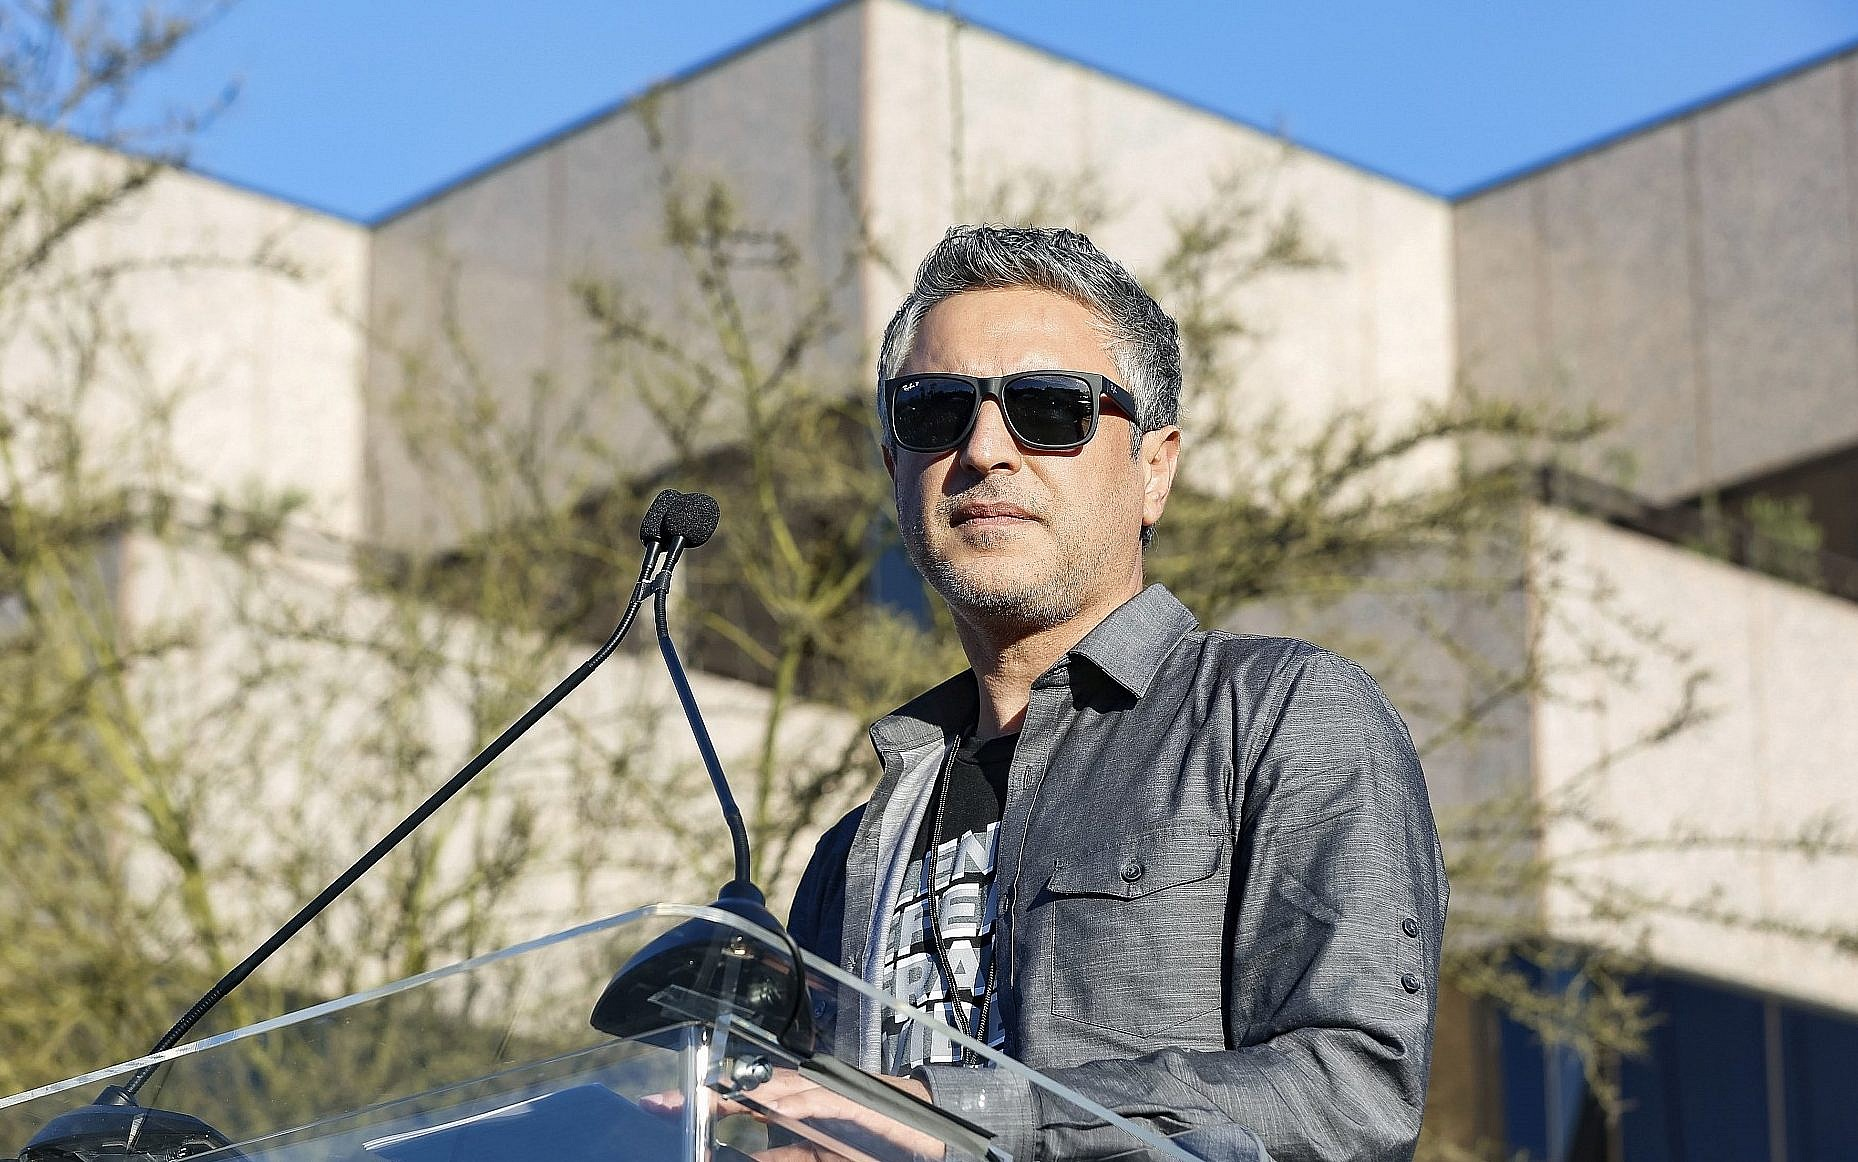 Israel's Shin Bet Interrogate And Threaten Reza Aslan